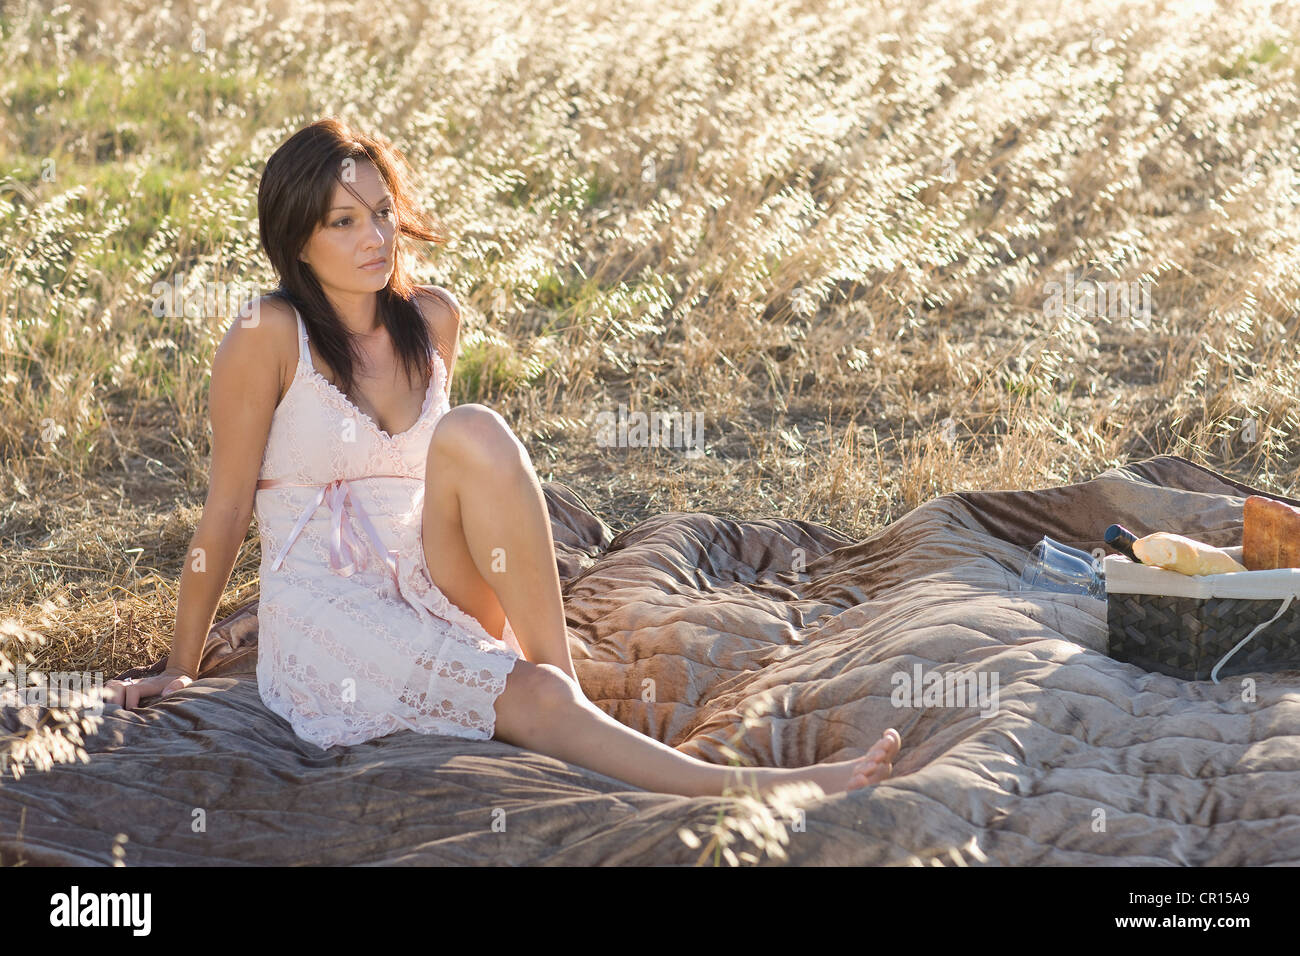 Woman picnicking in wheatfield - Stock Image